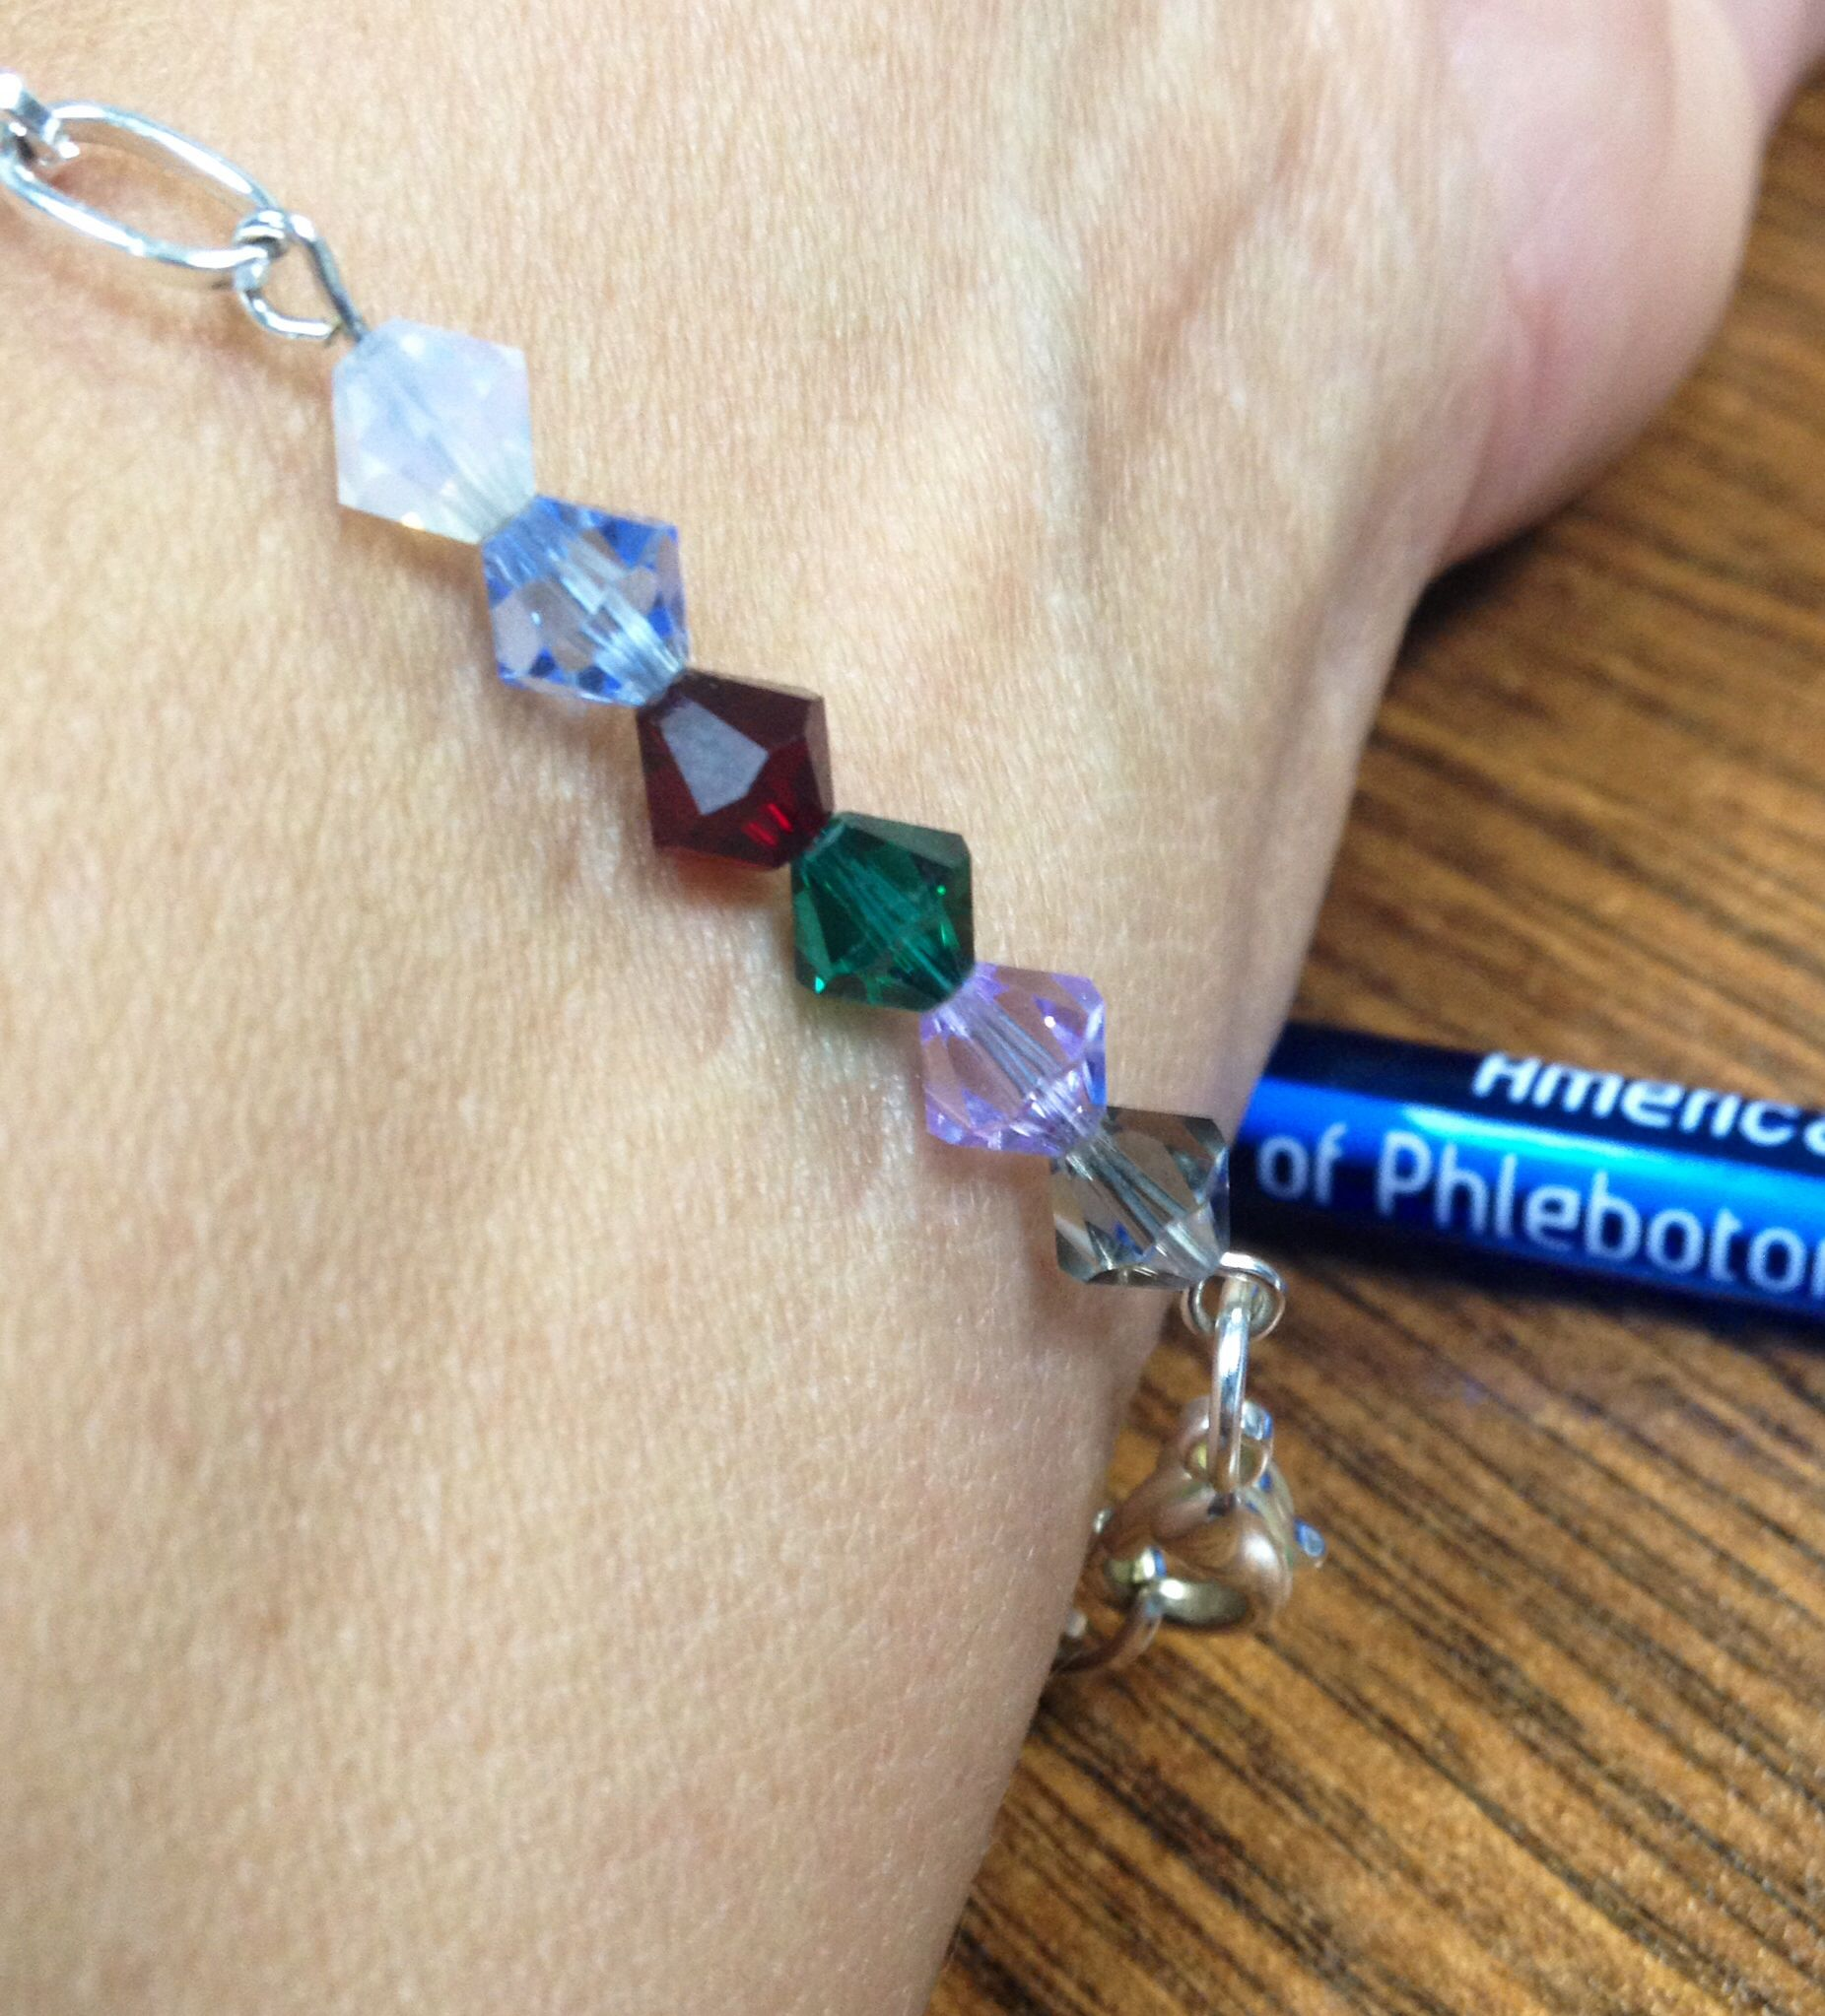 Phlebotomy Order Of Draw Bracelet White Blood Culture Blue